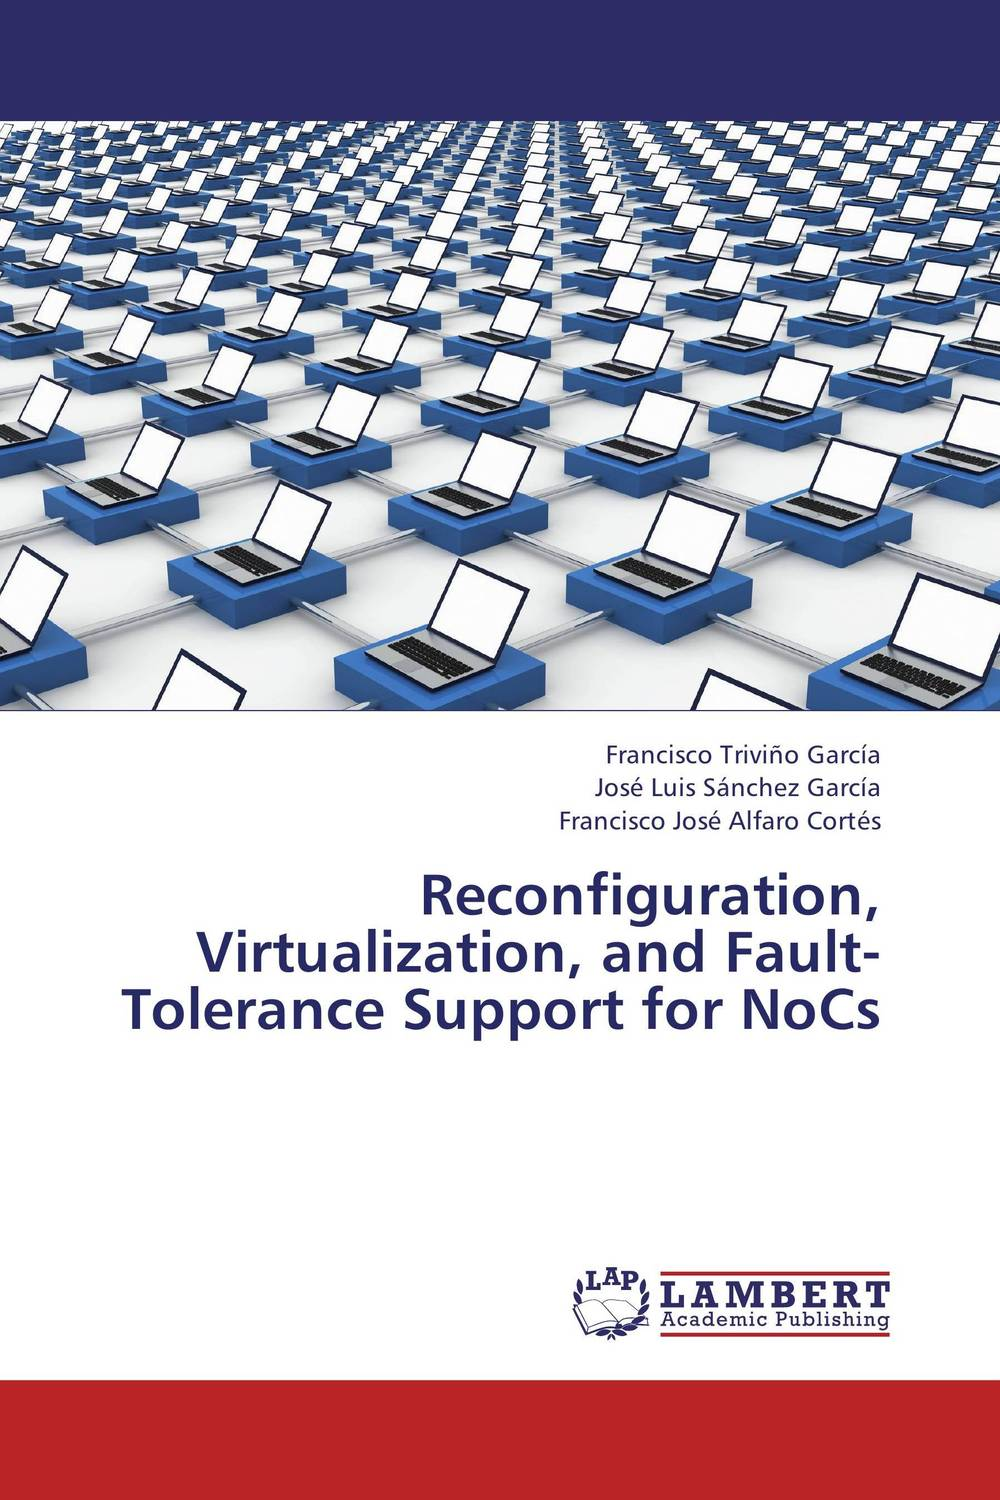 Reconfiguration, Virtualization, and Fault-Tolerance Support for NoCs m n semirings and a generalized fault tolerance algebra of systems